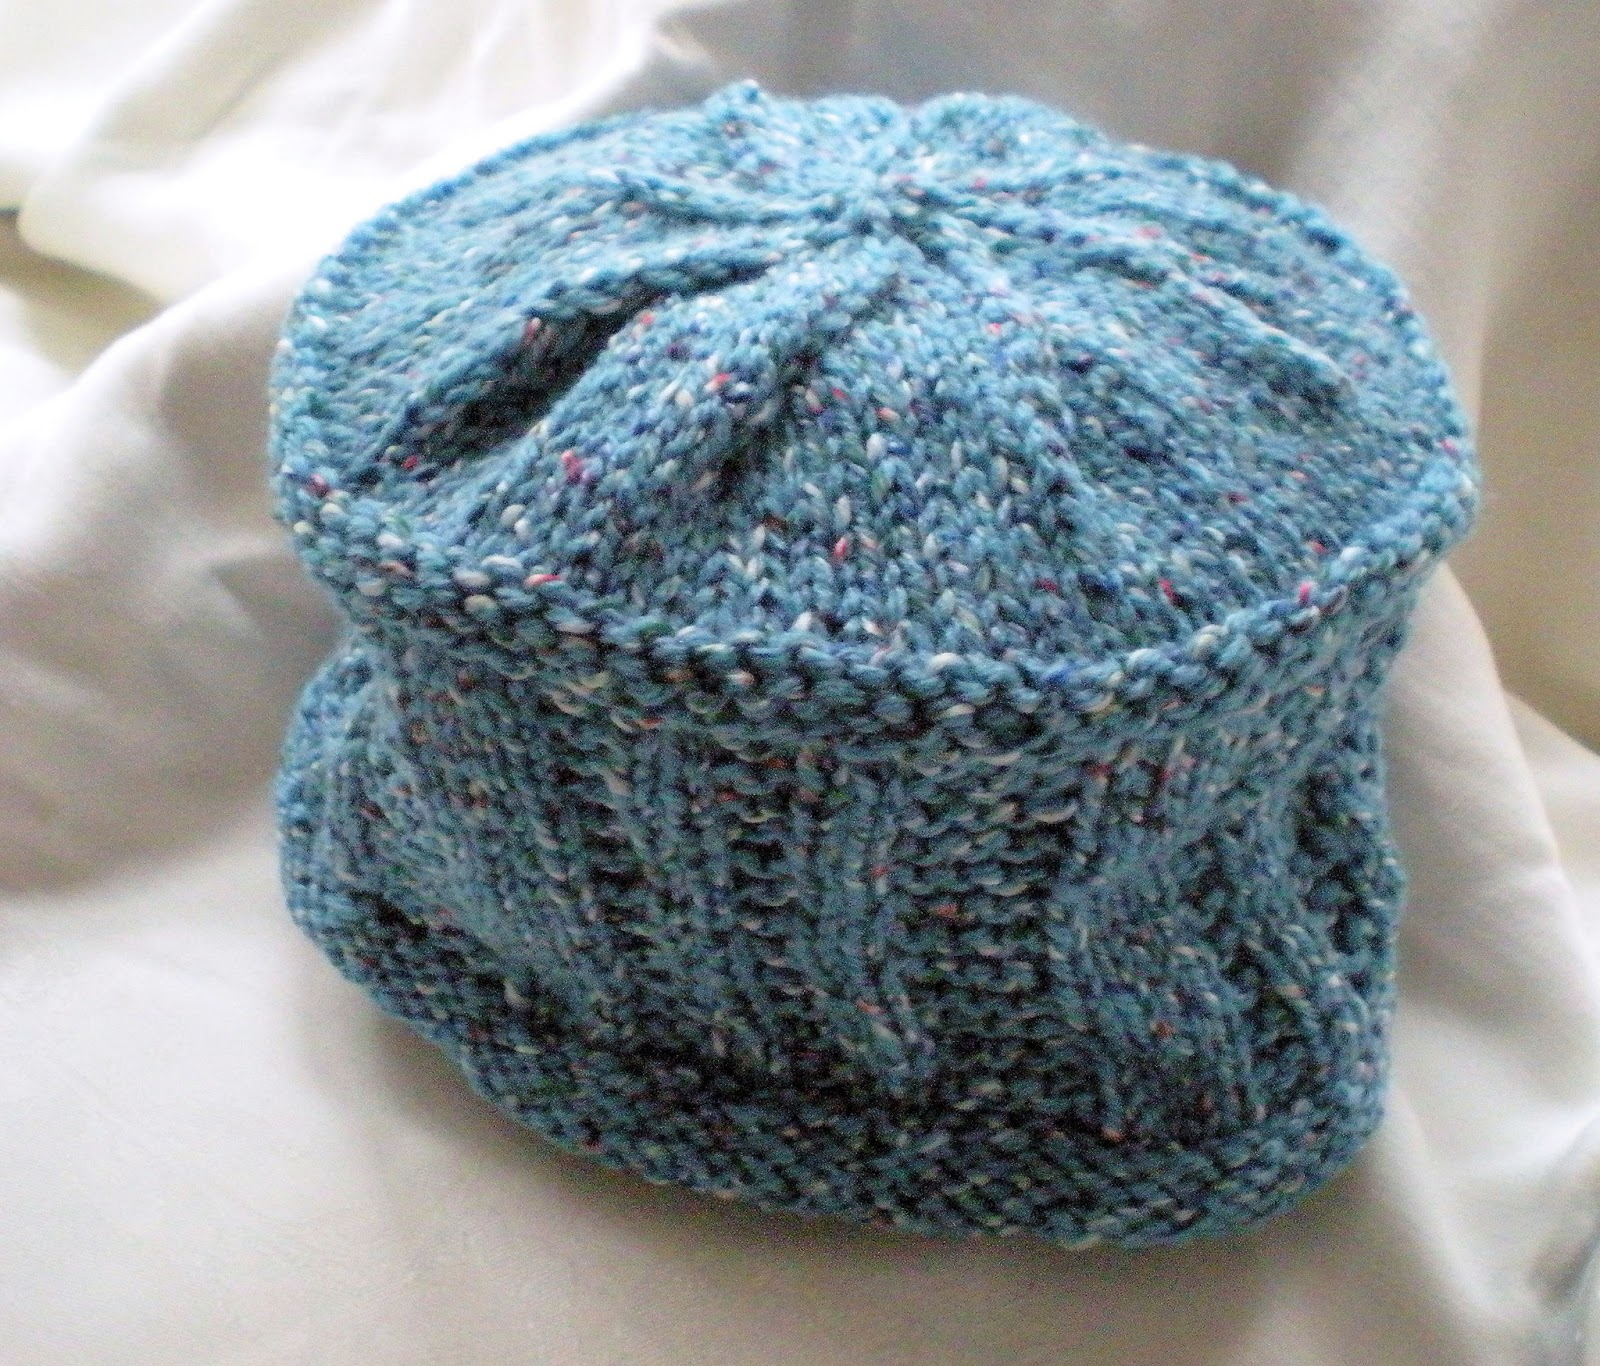 Feistywoman Designs: Hat #9, a change of yarn and stitch pattern